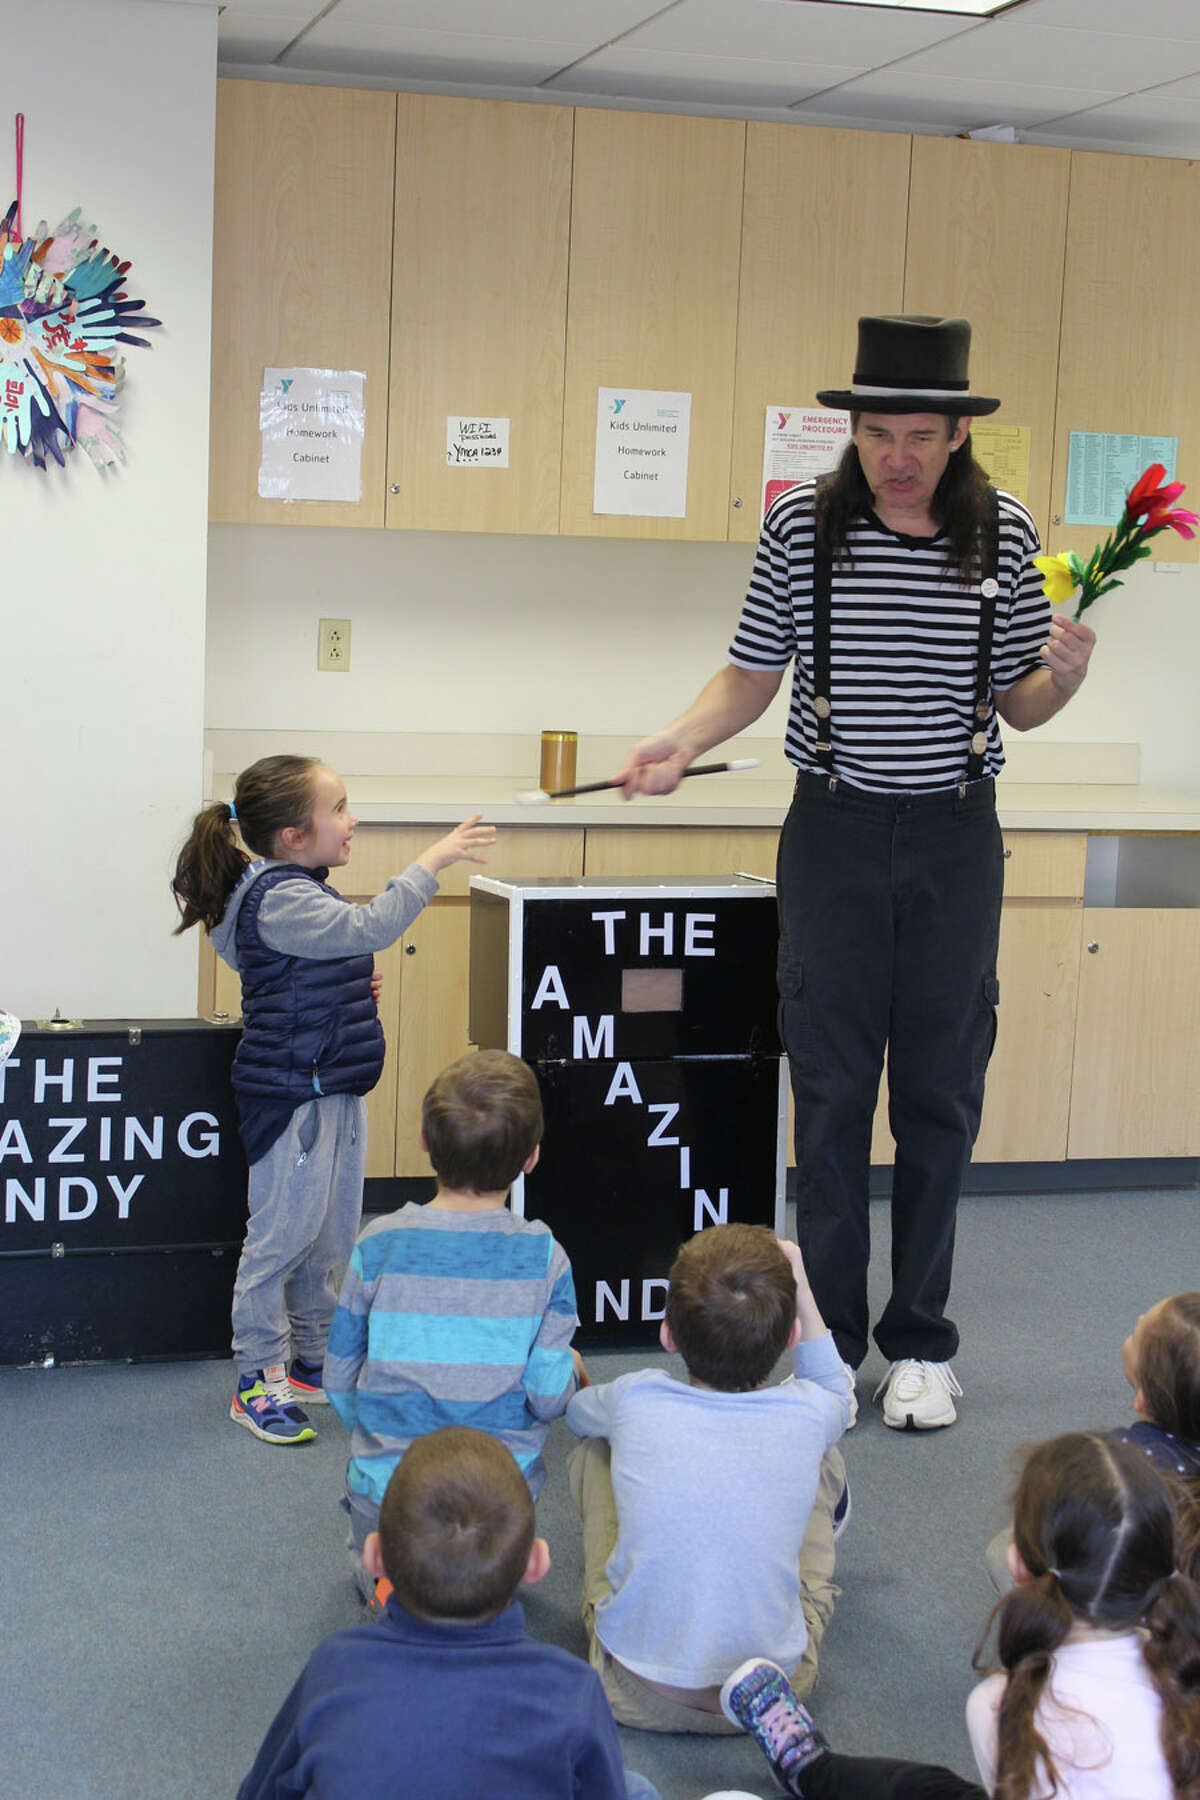 Vacation Camp at the New Canaan YMCA was well attended by school children who enjoyed fun activities including a visit from The Amazing Andy and his furry friend, Silly Willy the rabbit, to do magic tricks.